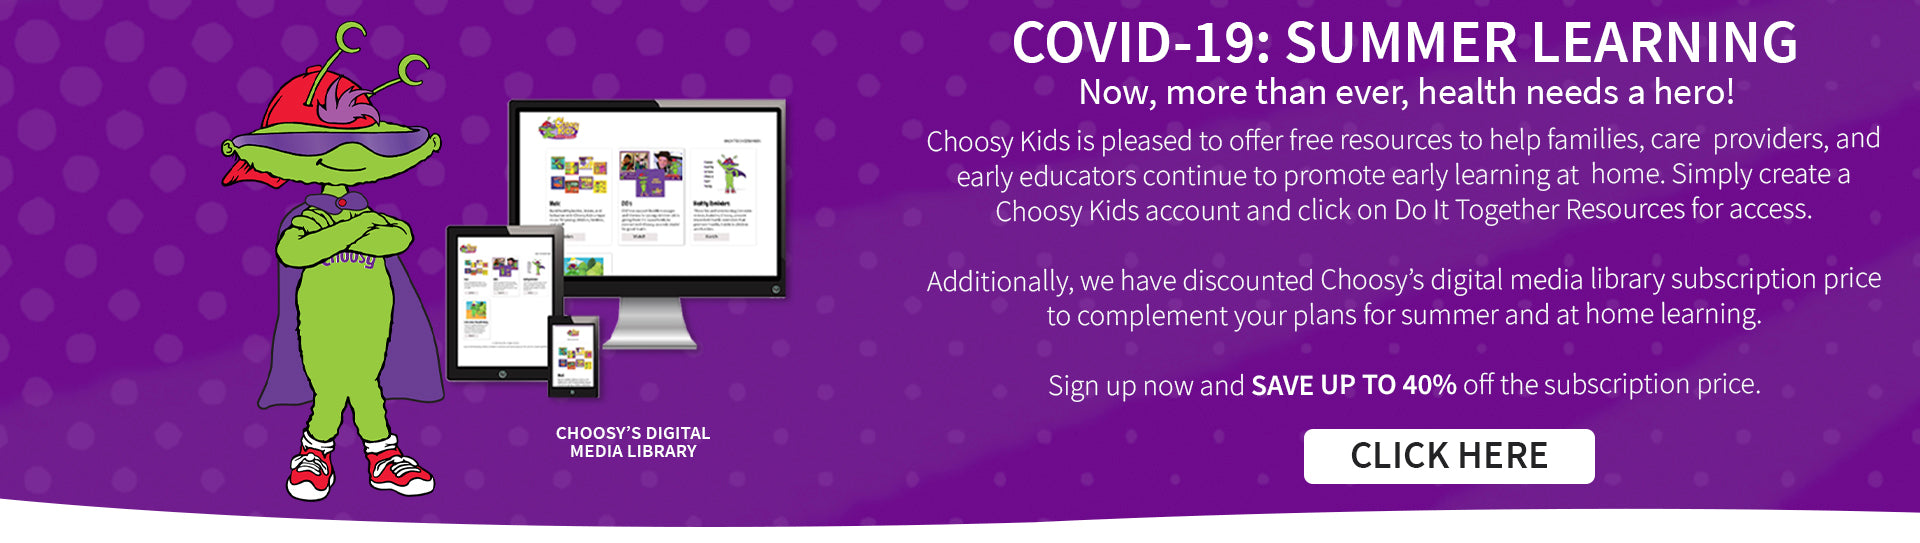 Covid Summer Resources